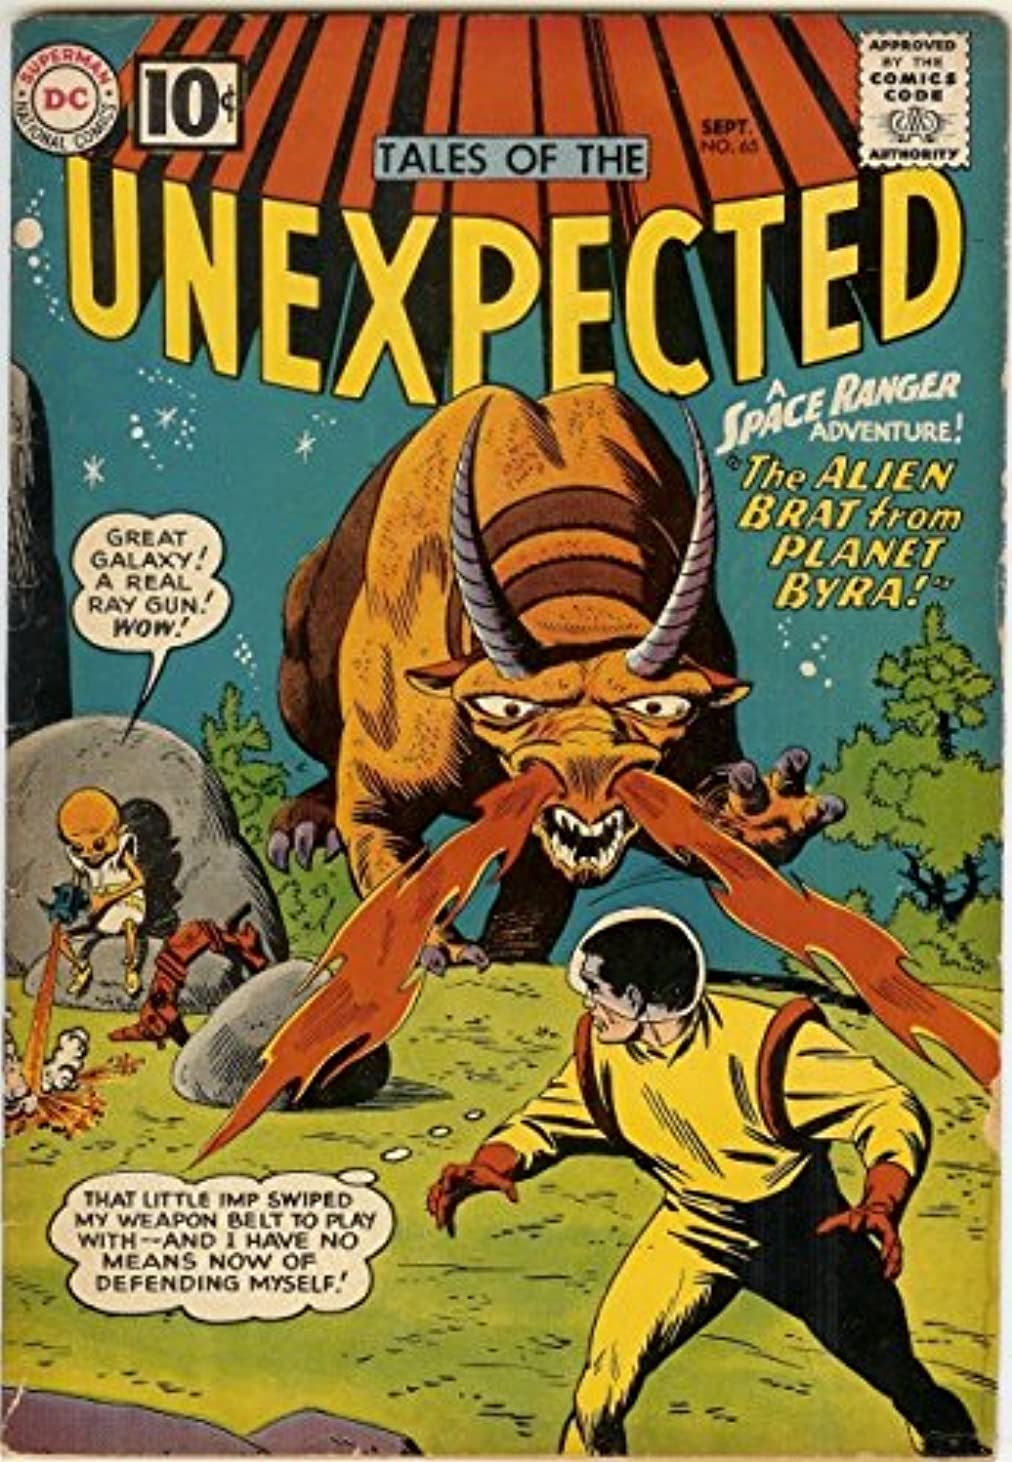 UNEXPECTED (TALES OF) 65 VG Space Ranger glossy COMICS ztpwa288332